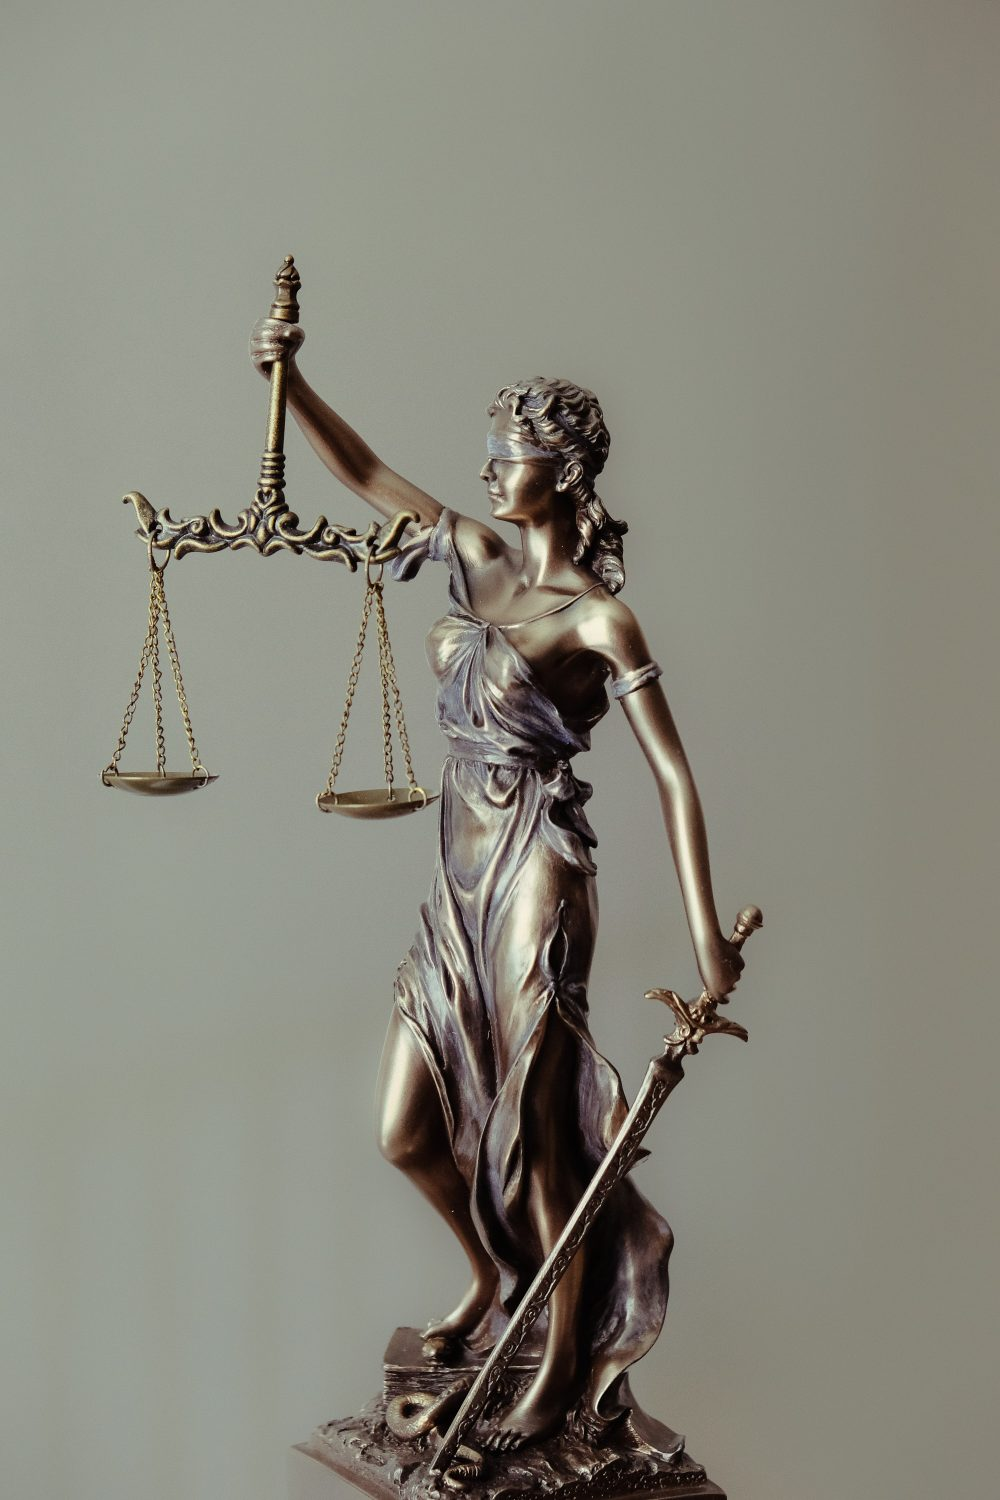 picture with the scales of justice on a post talkign about The Good Wife